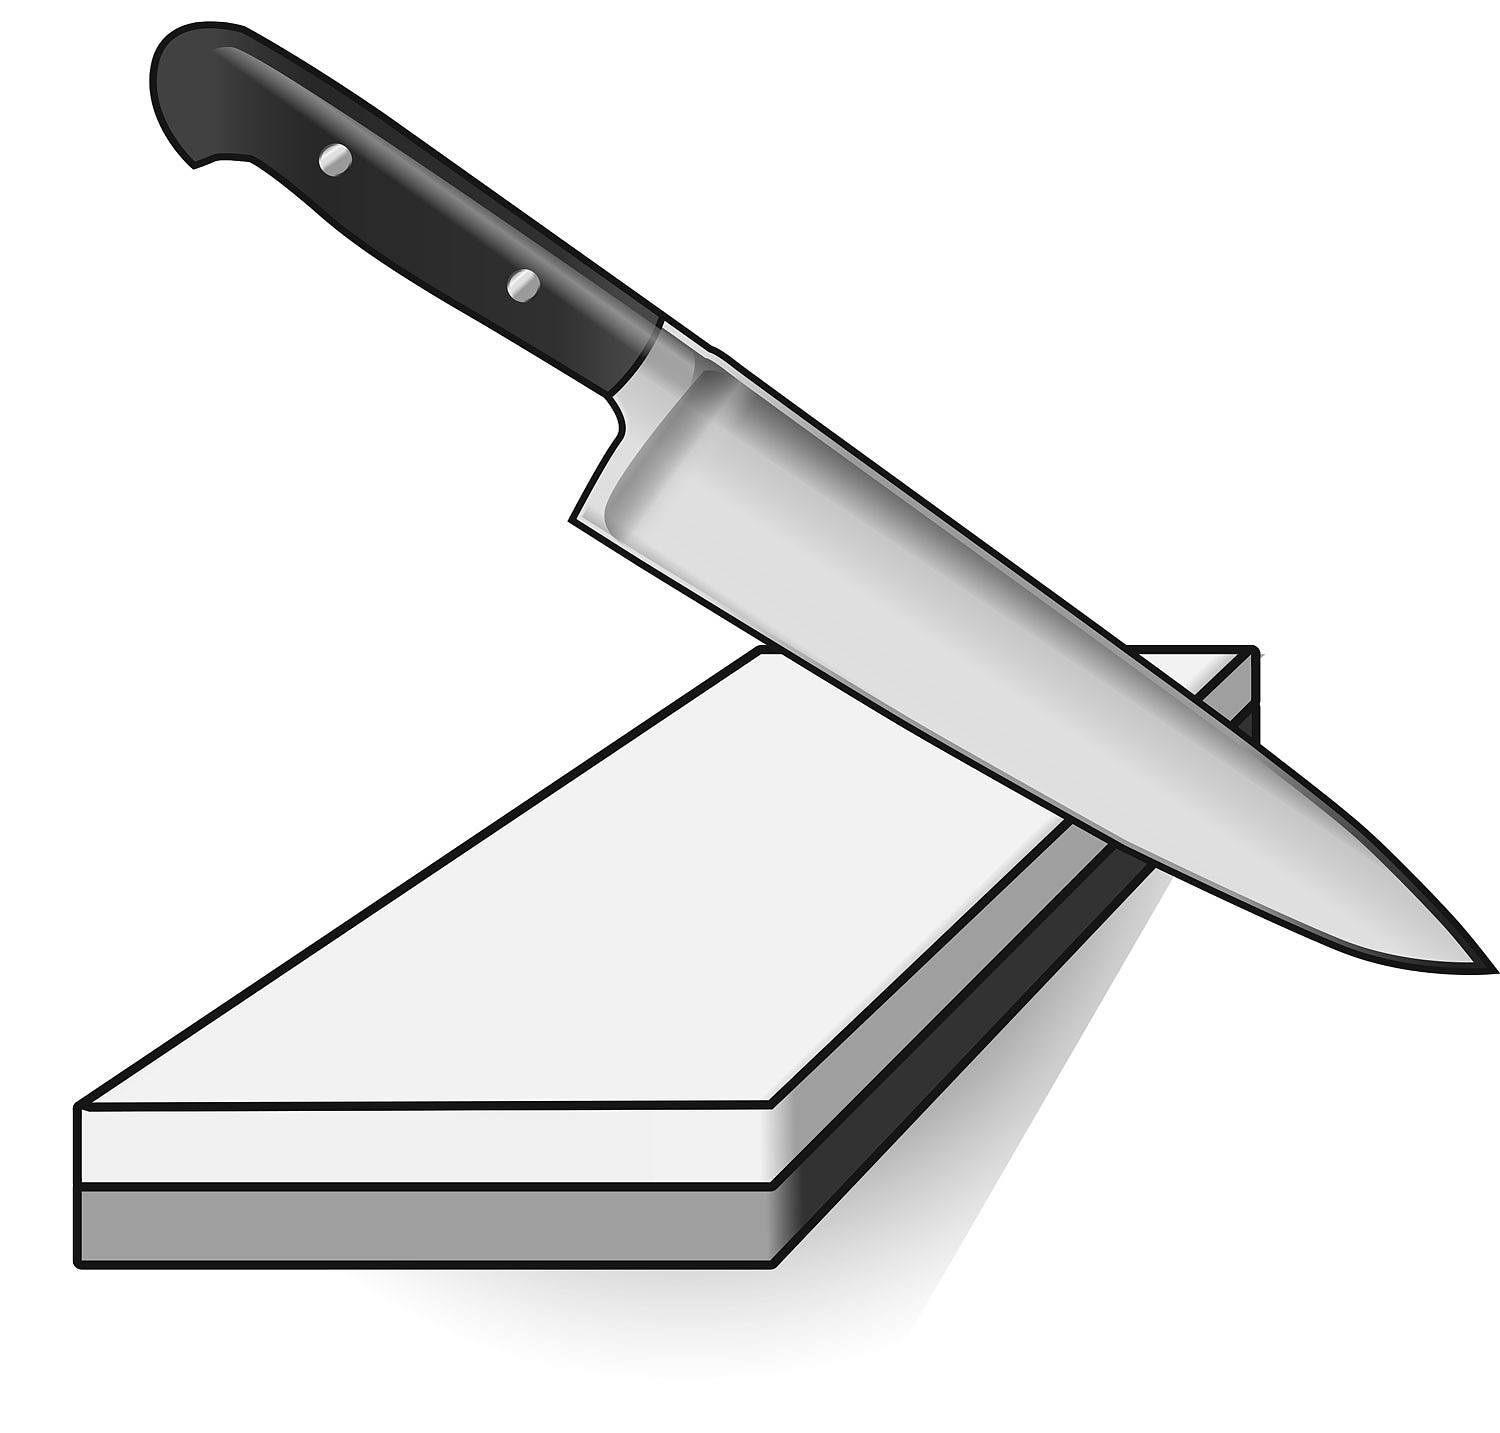 Pocket Knife Sharpening Clip Art